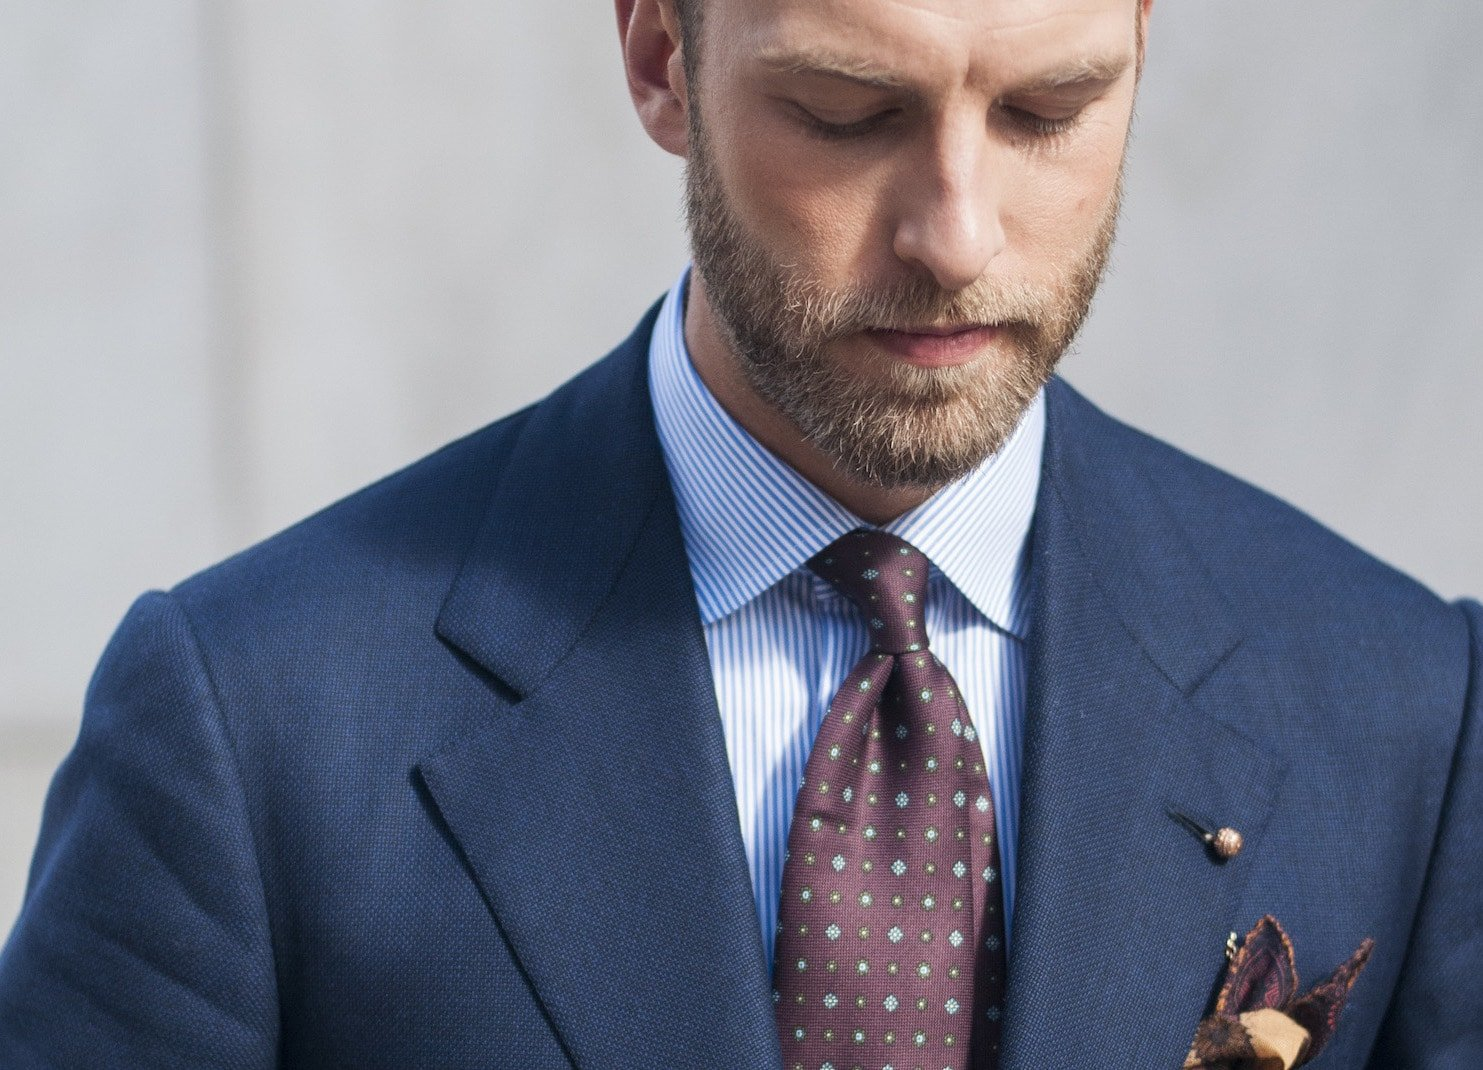 Cocktail Dress Code A Definitive Guide In 2020 Boss Hunting